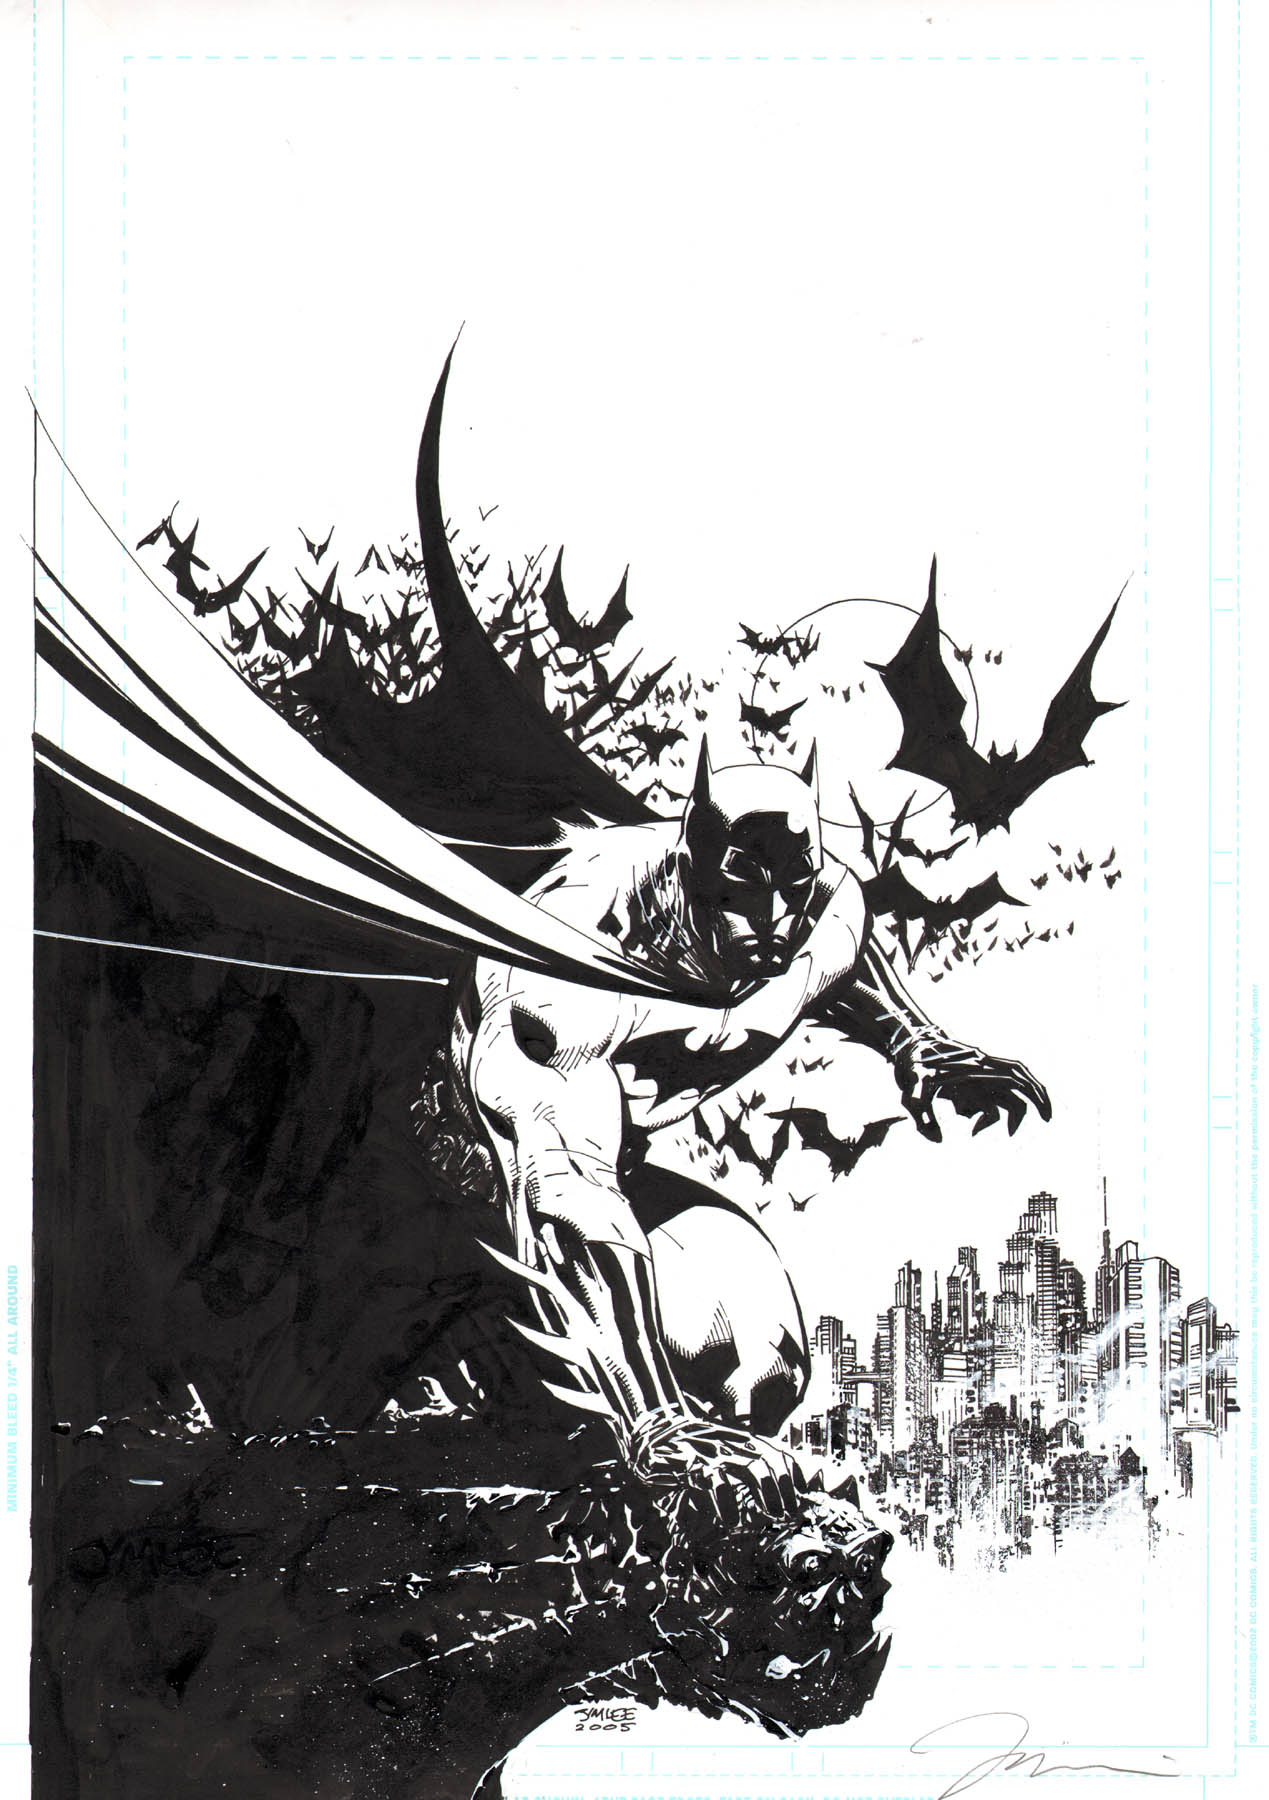 ComicLink Original Art Auction Nov 29th